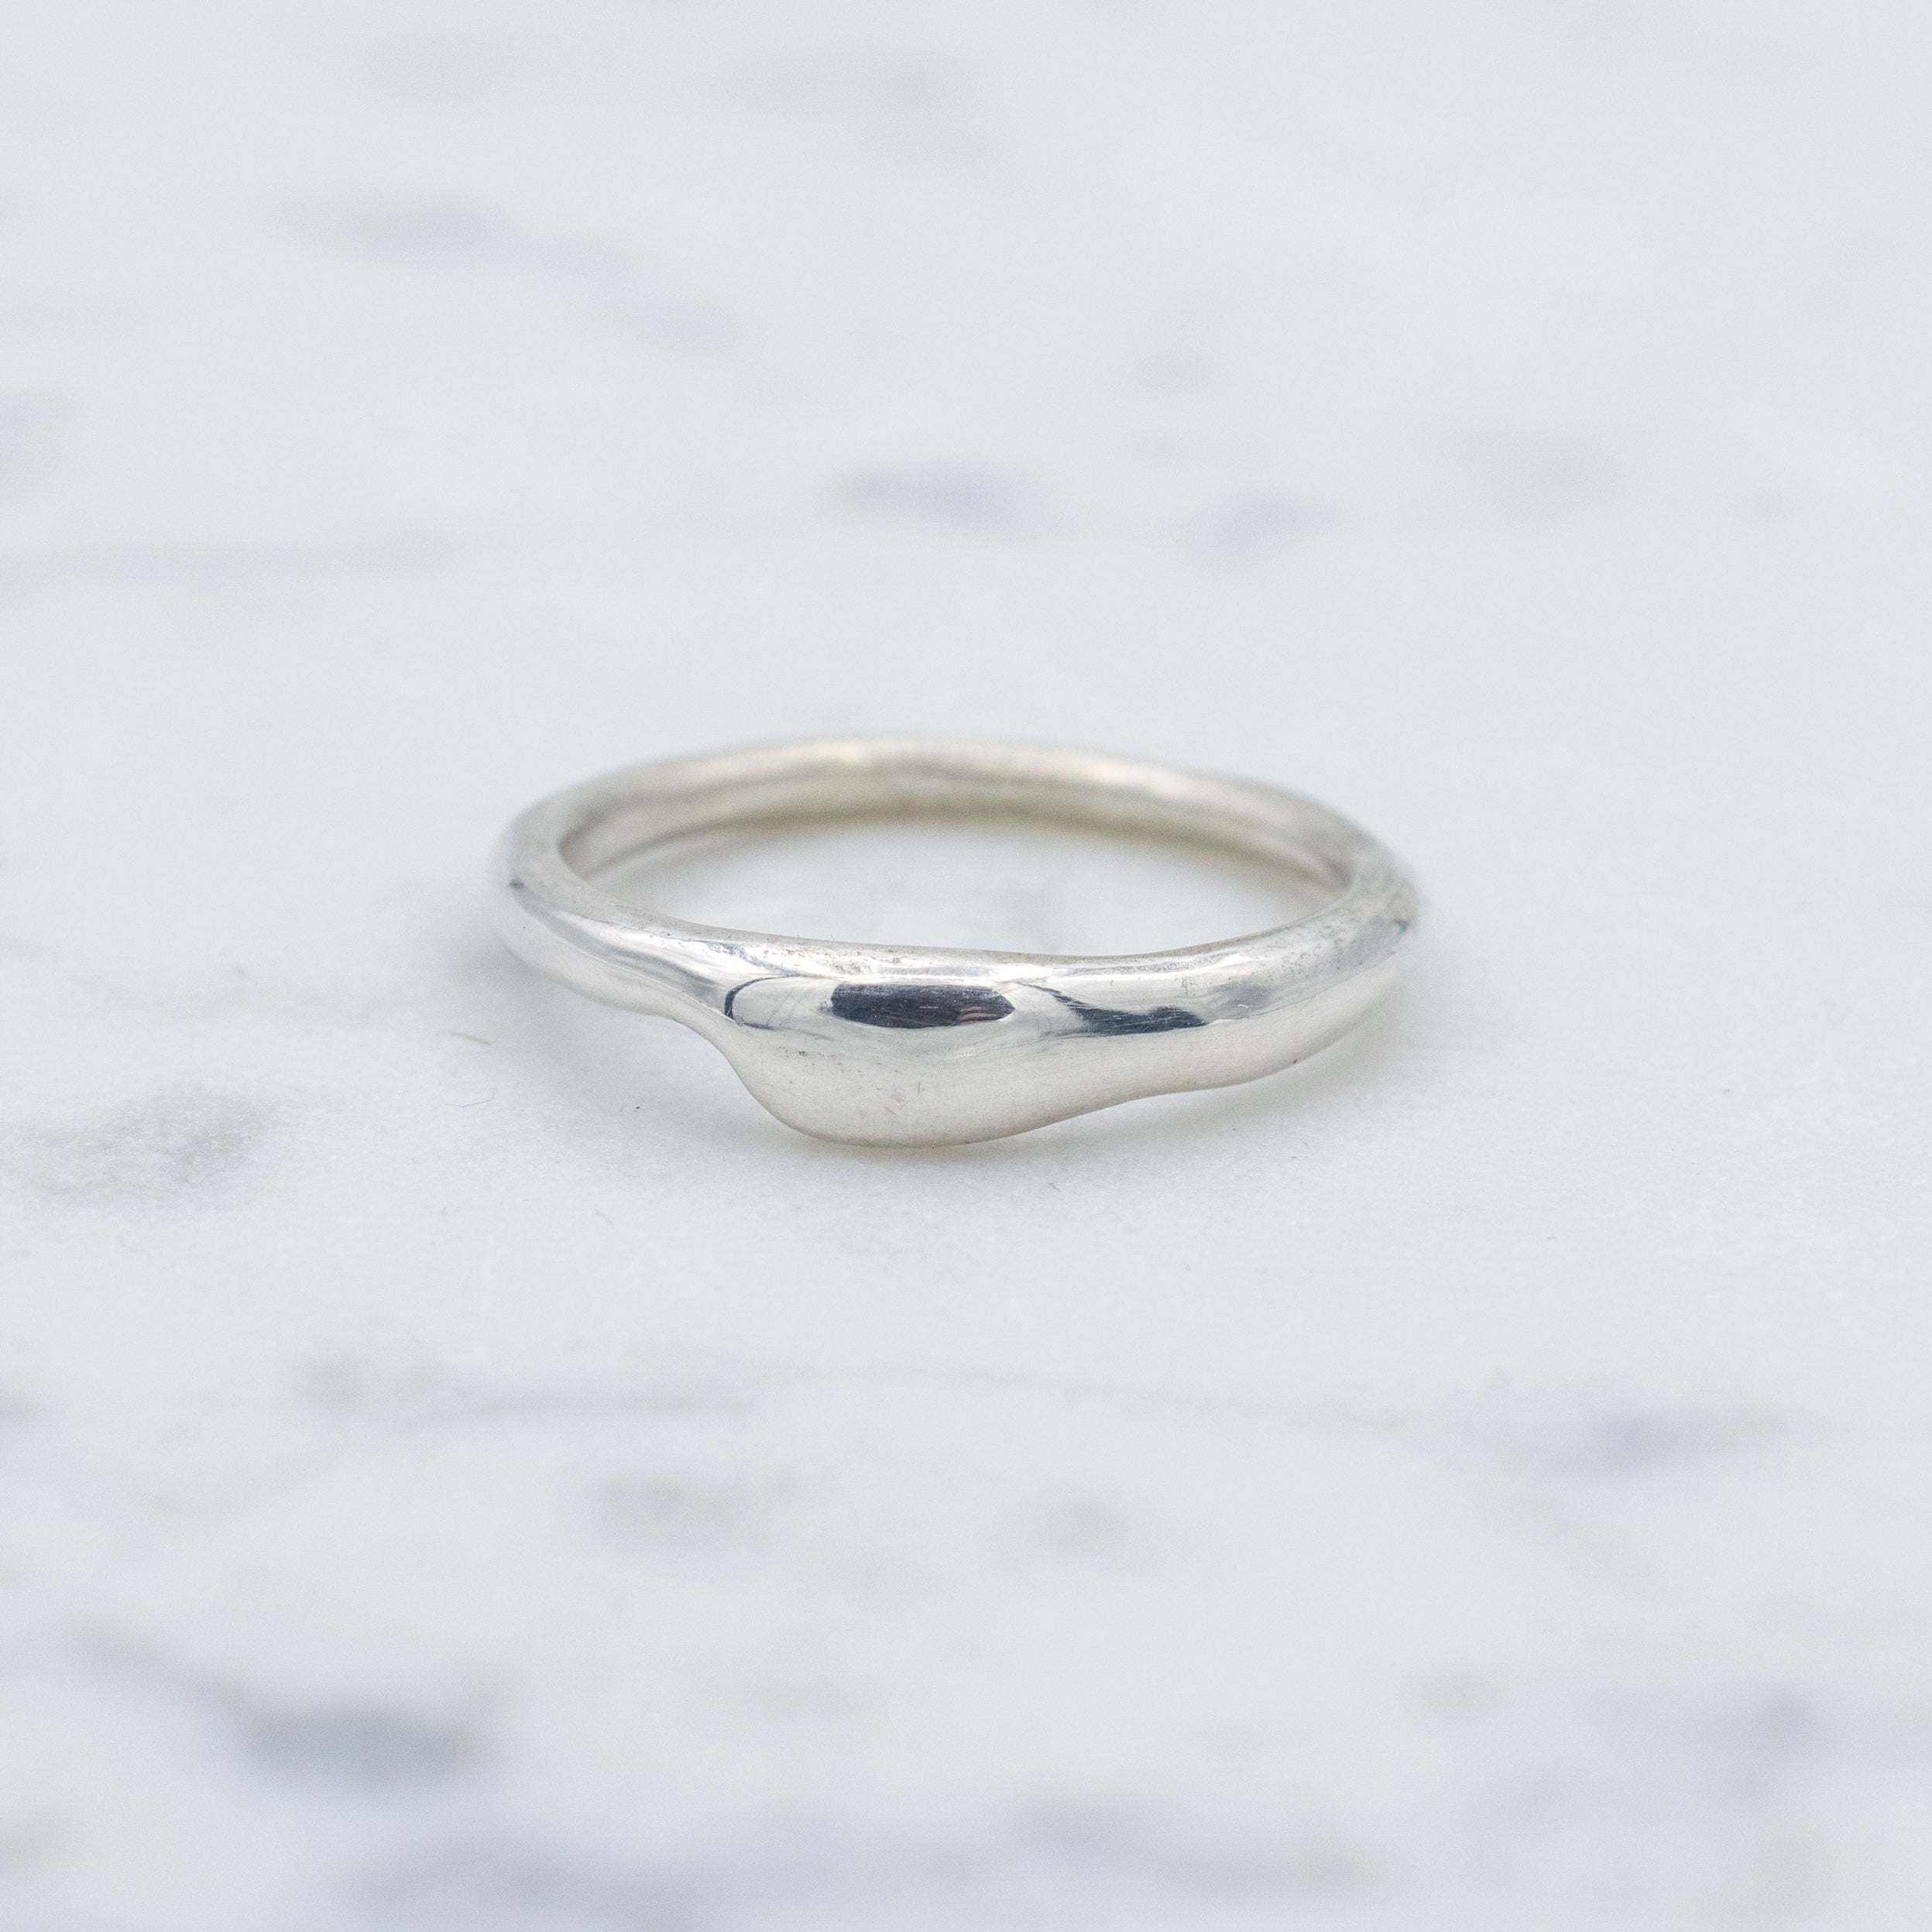 Organic shaped sterling silver band